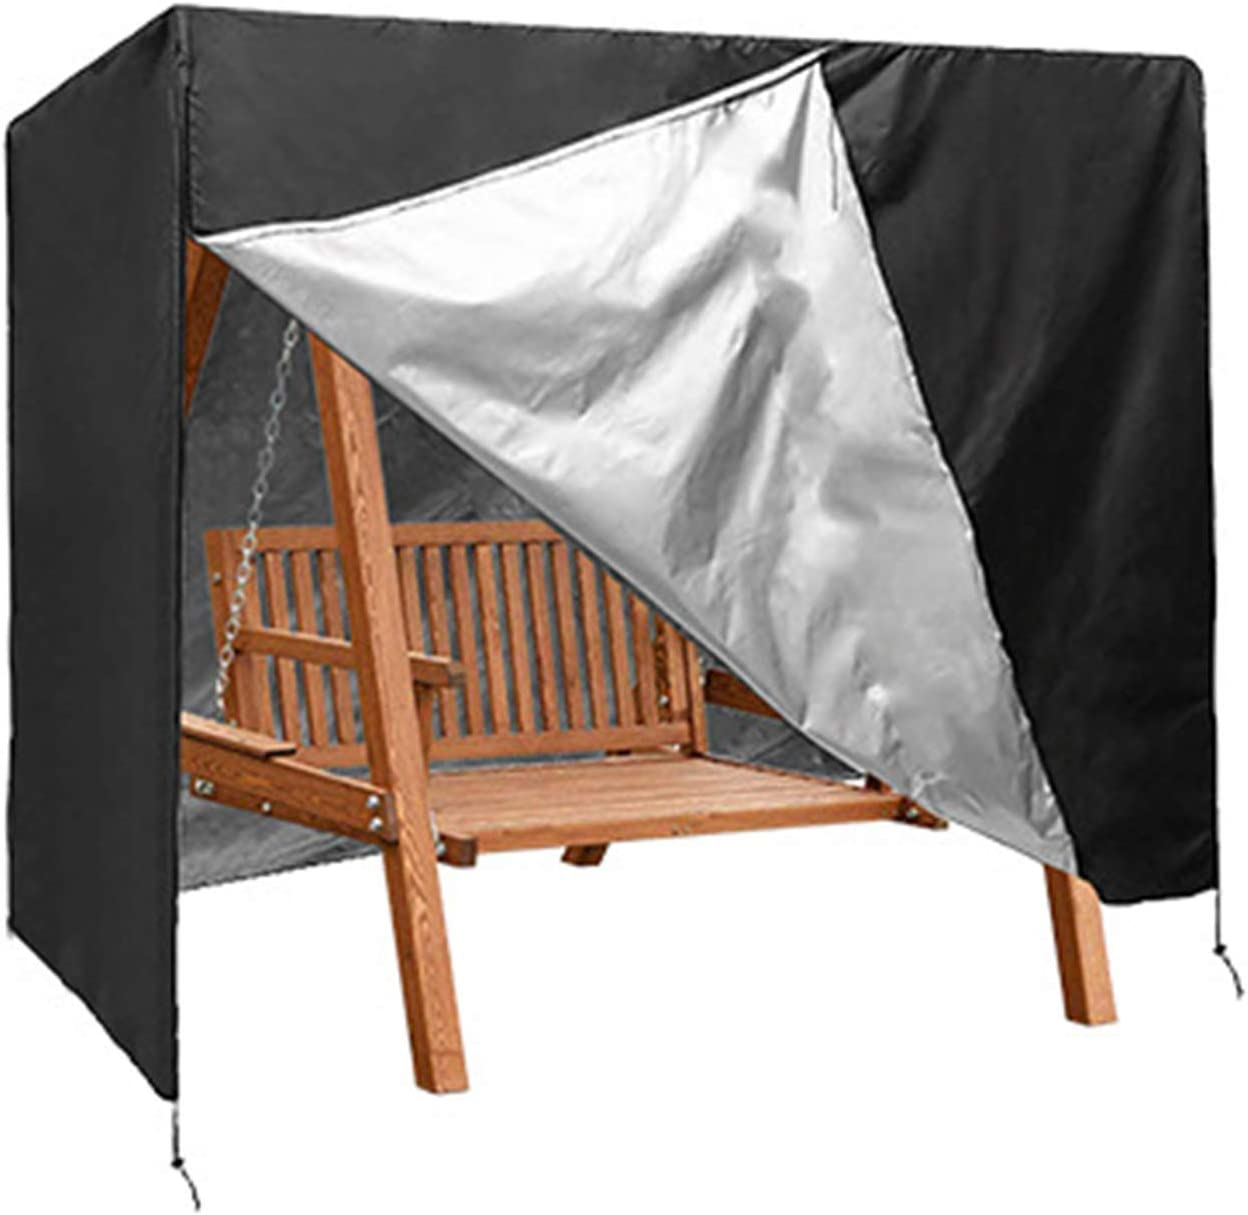 StorMaster Patio Swing Cover (87 L x 60 D x 72 H inches) Water-Resistant Canopy Swing Cover with 2 Zippers 3 Seater Waterproof Outdoor